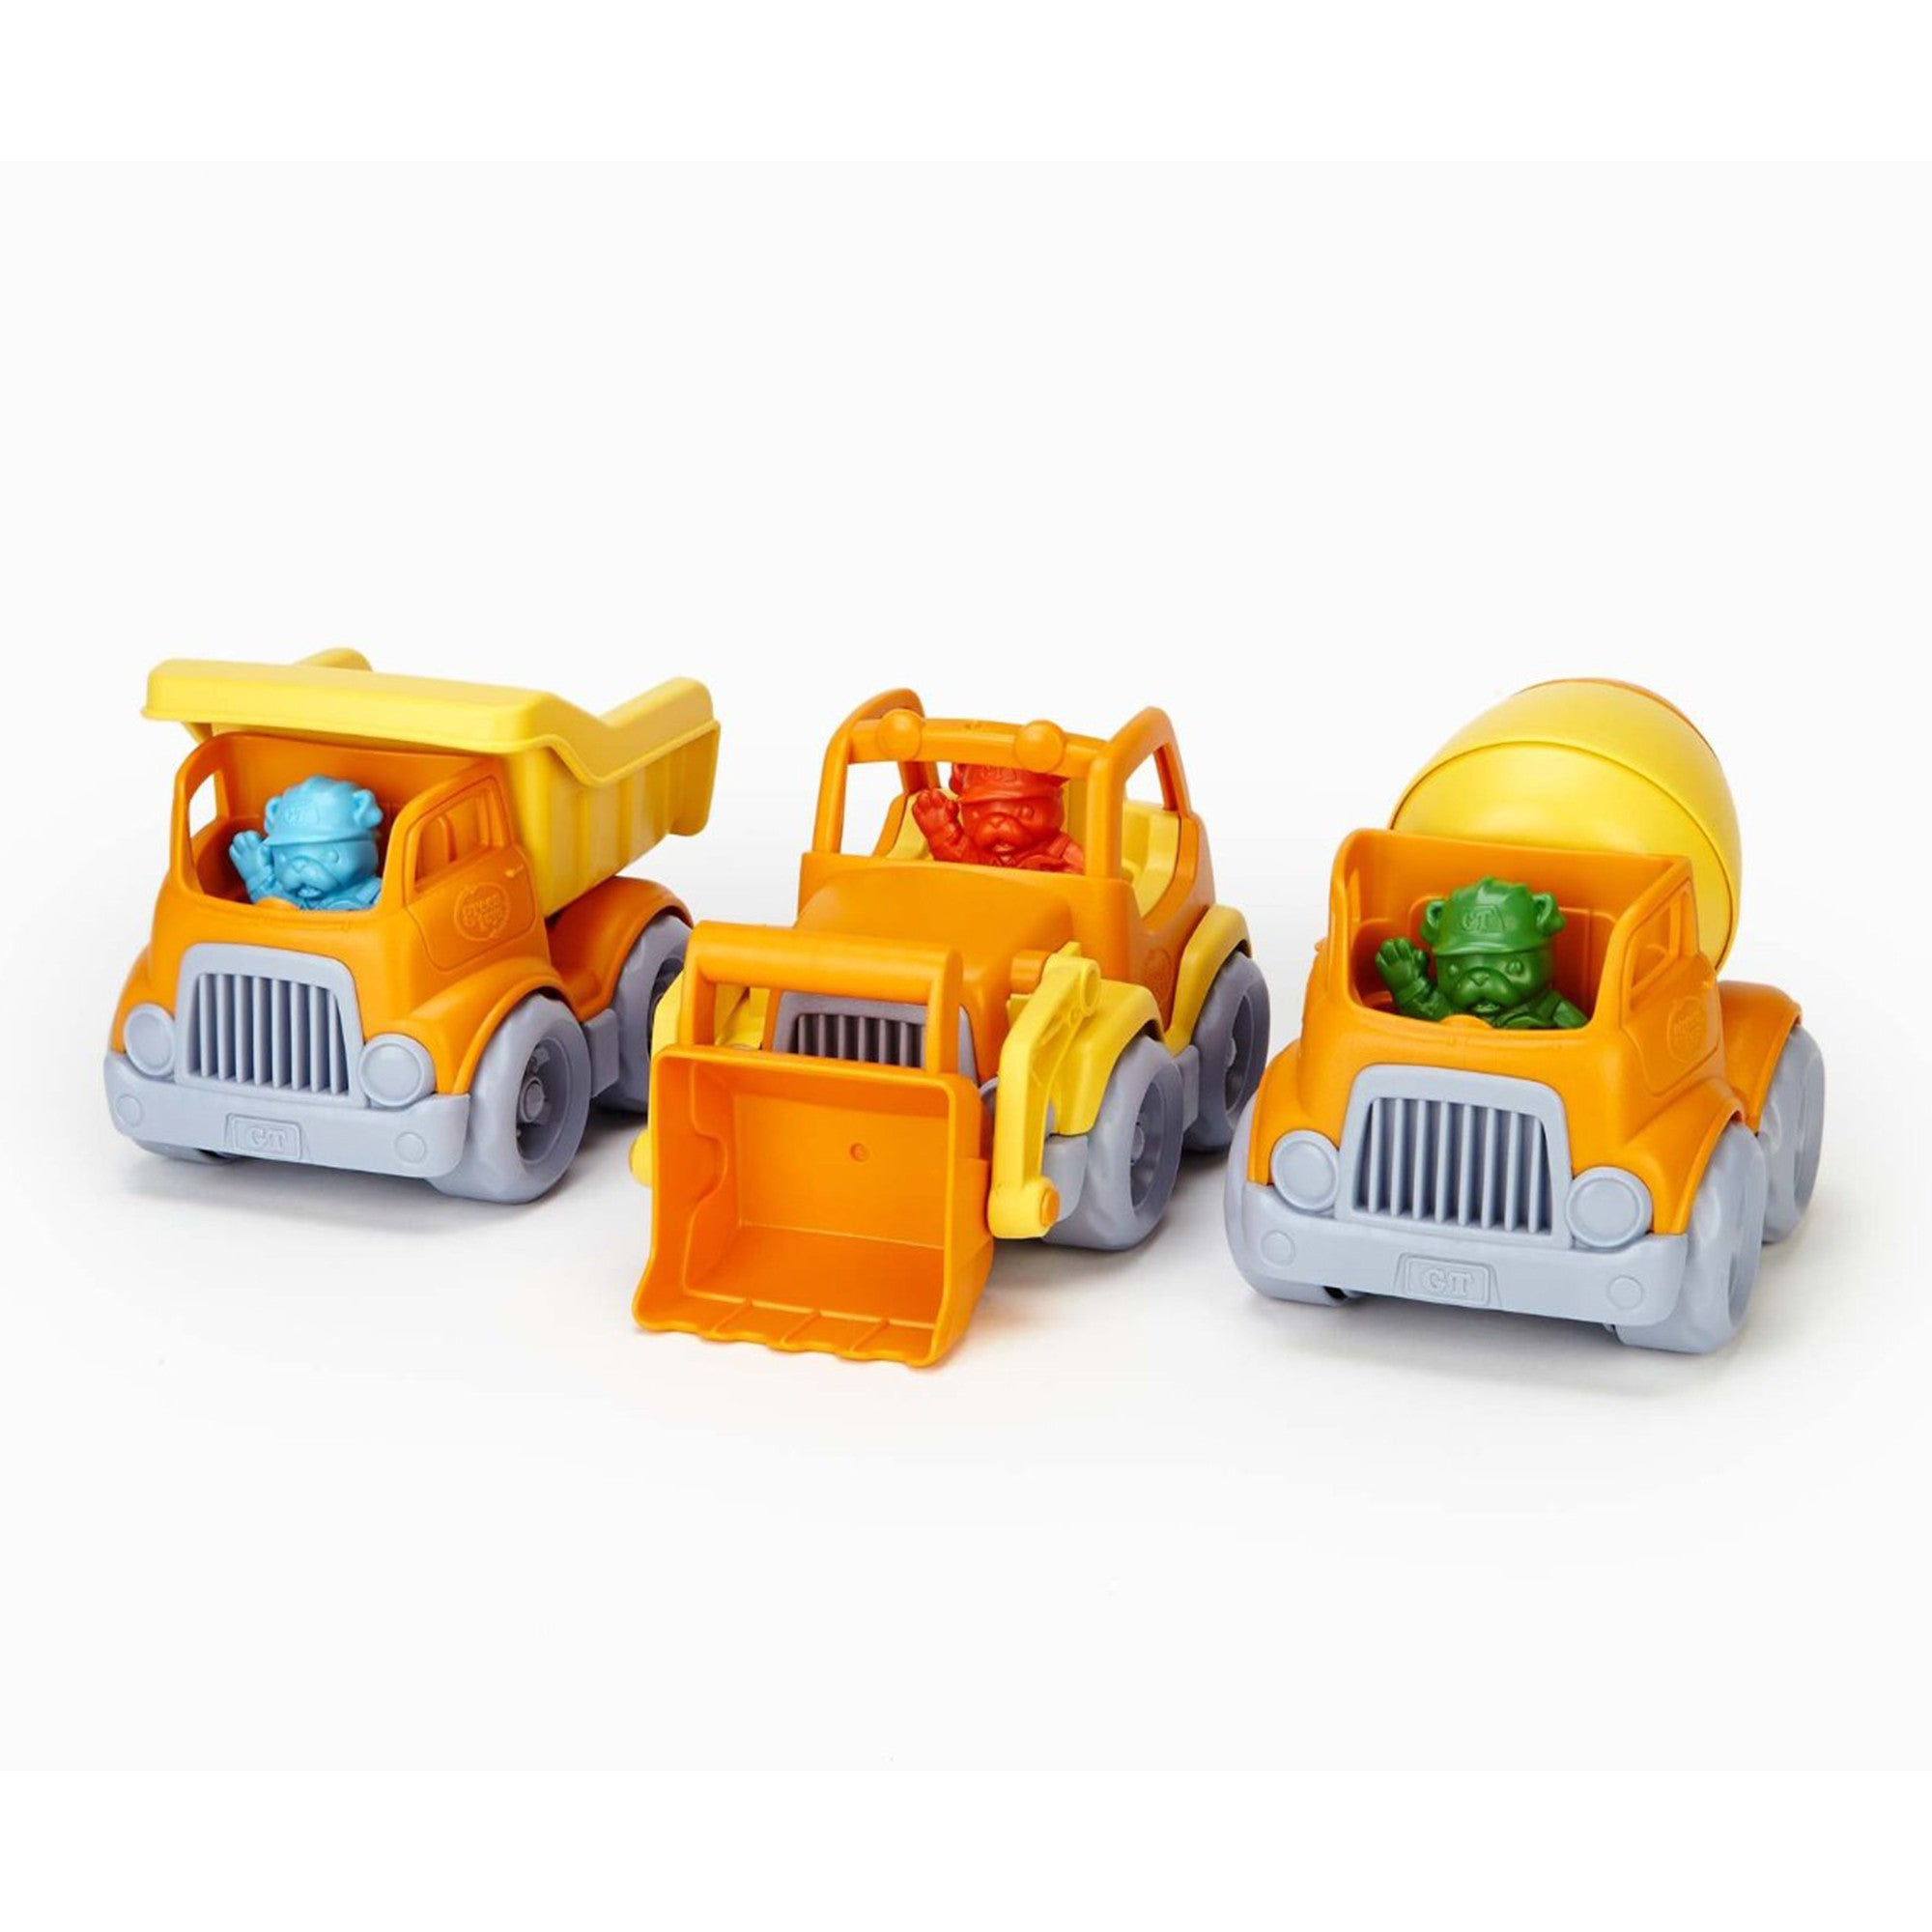 Green Toys Construction Toy Green Toys Play Vehicles at Little Earth Nest Eco Shop